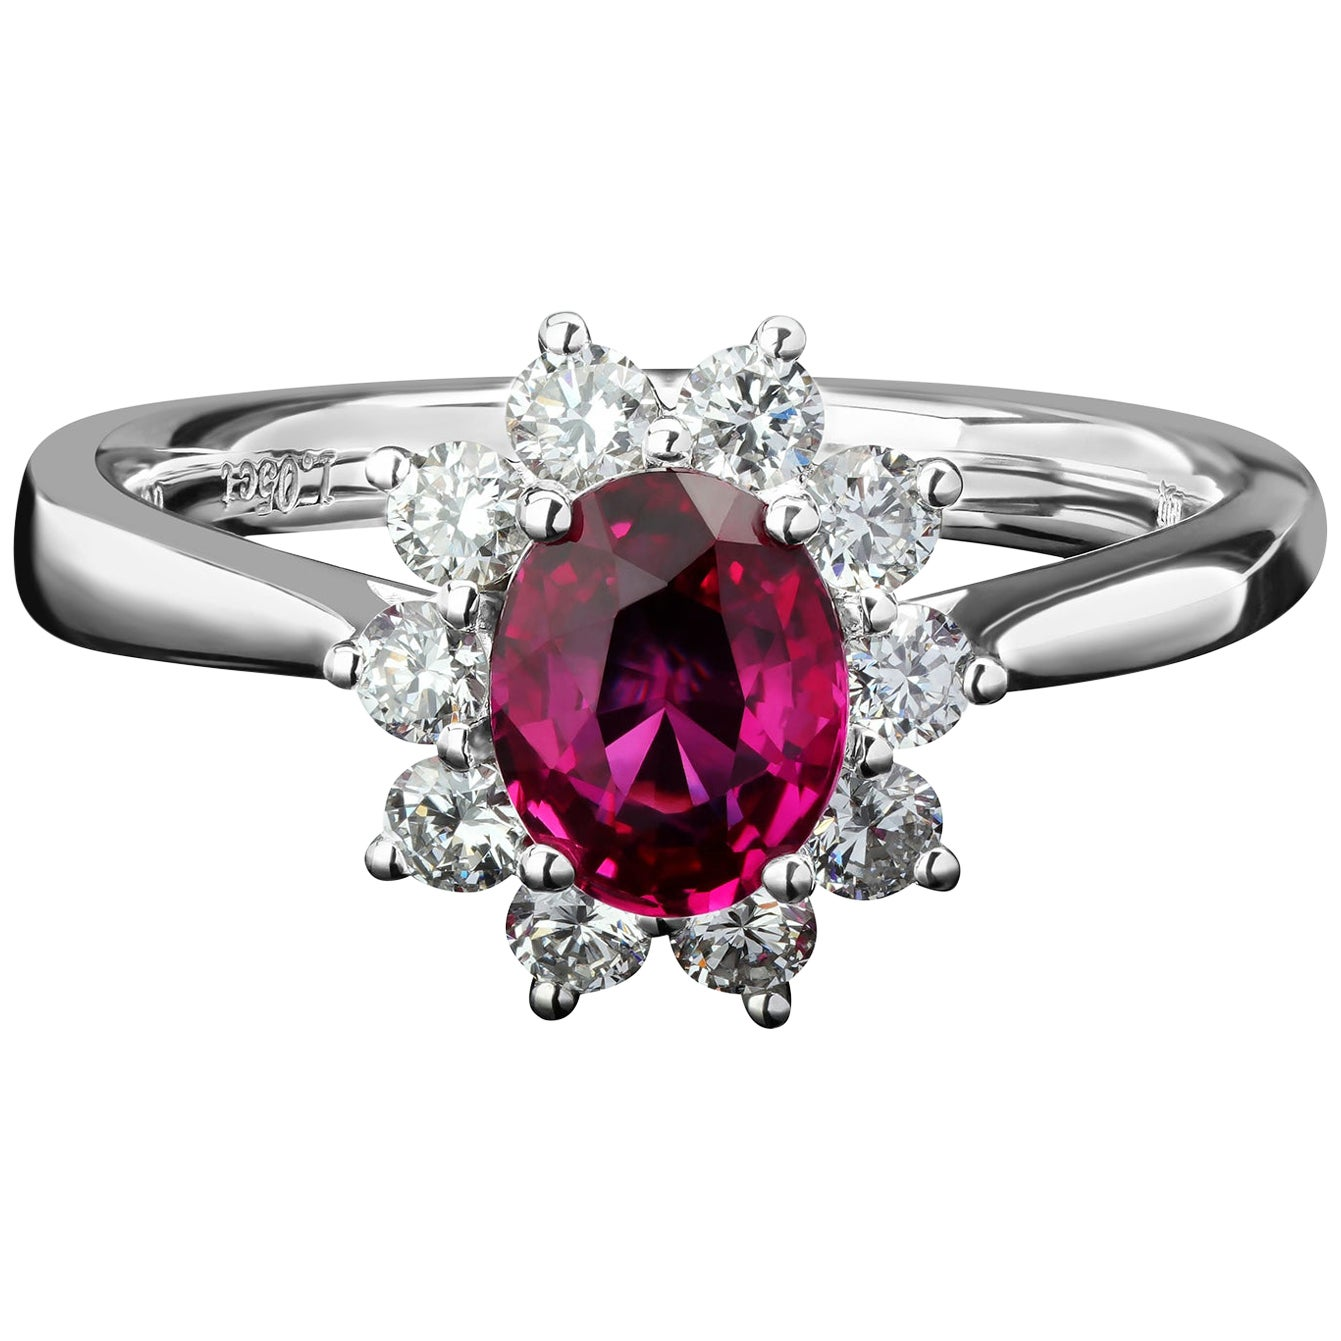 Ring Burmese Unheated Ruby Diamond Gold Ring 18 Karat White Gold Christmas